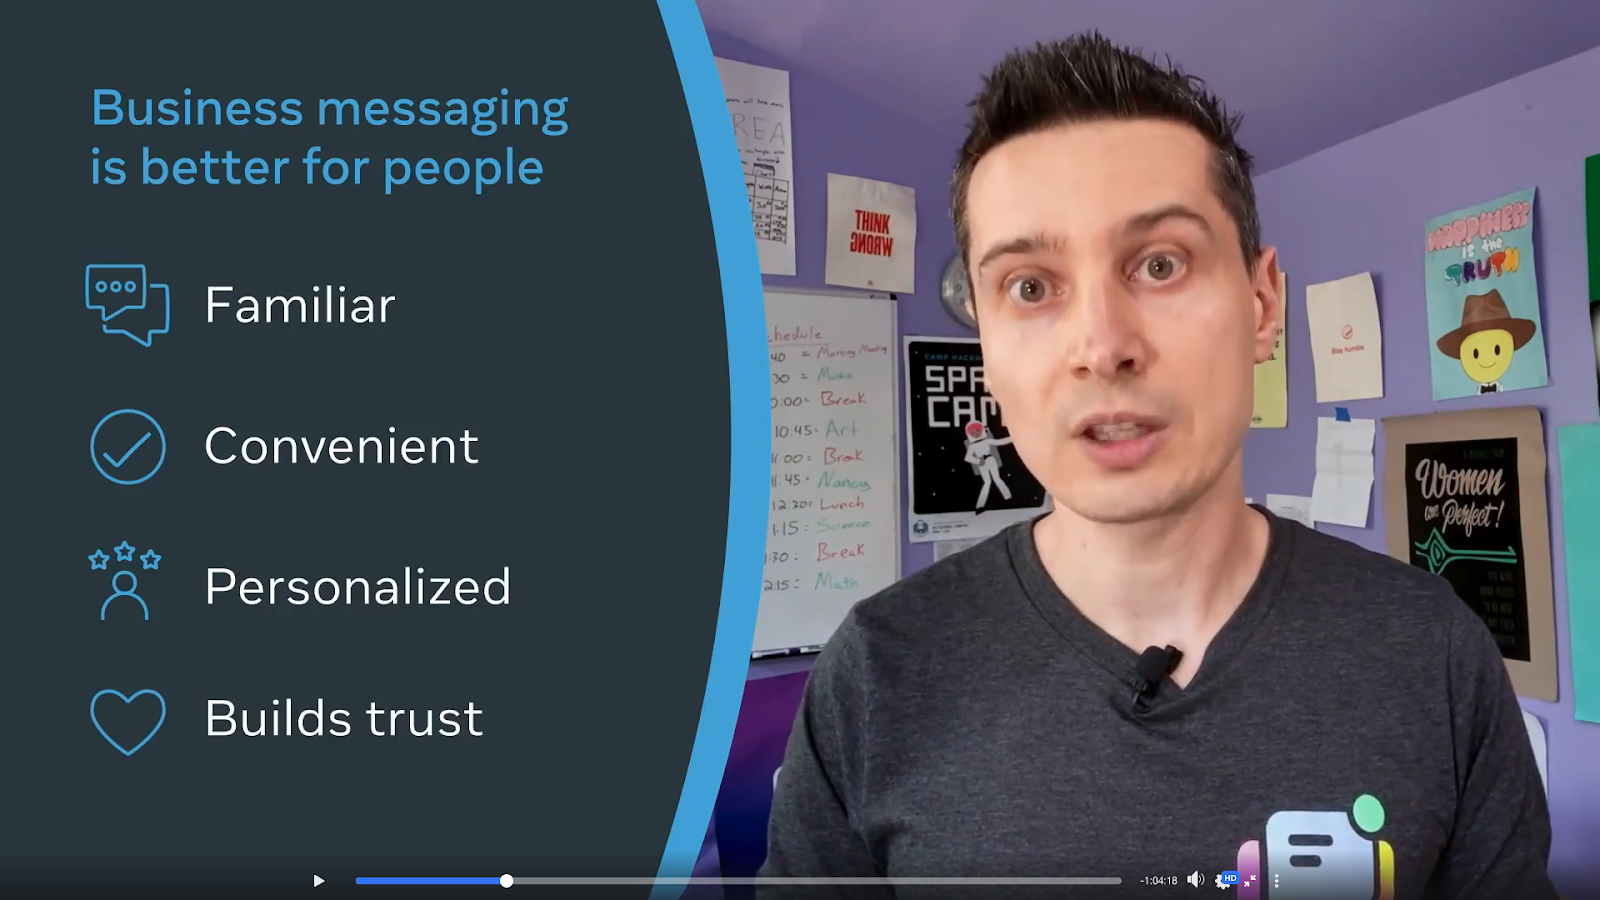 Messaging is familiar, convenient, and personalized